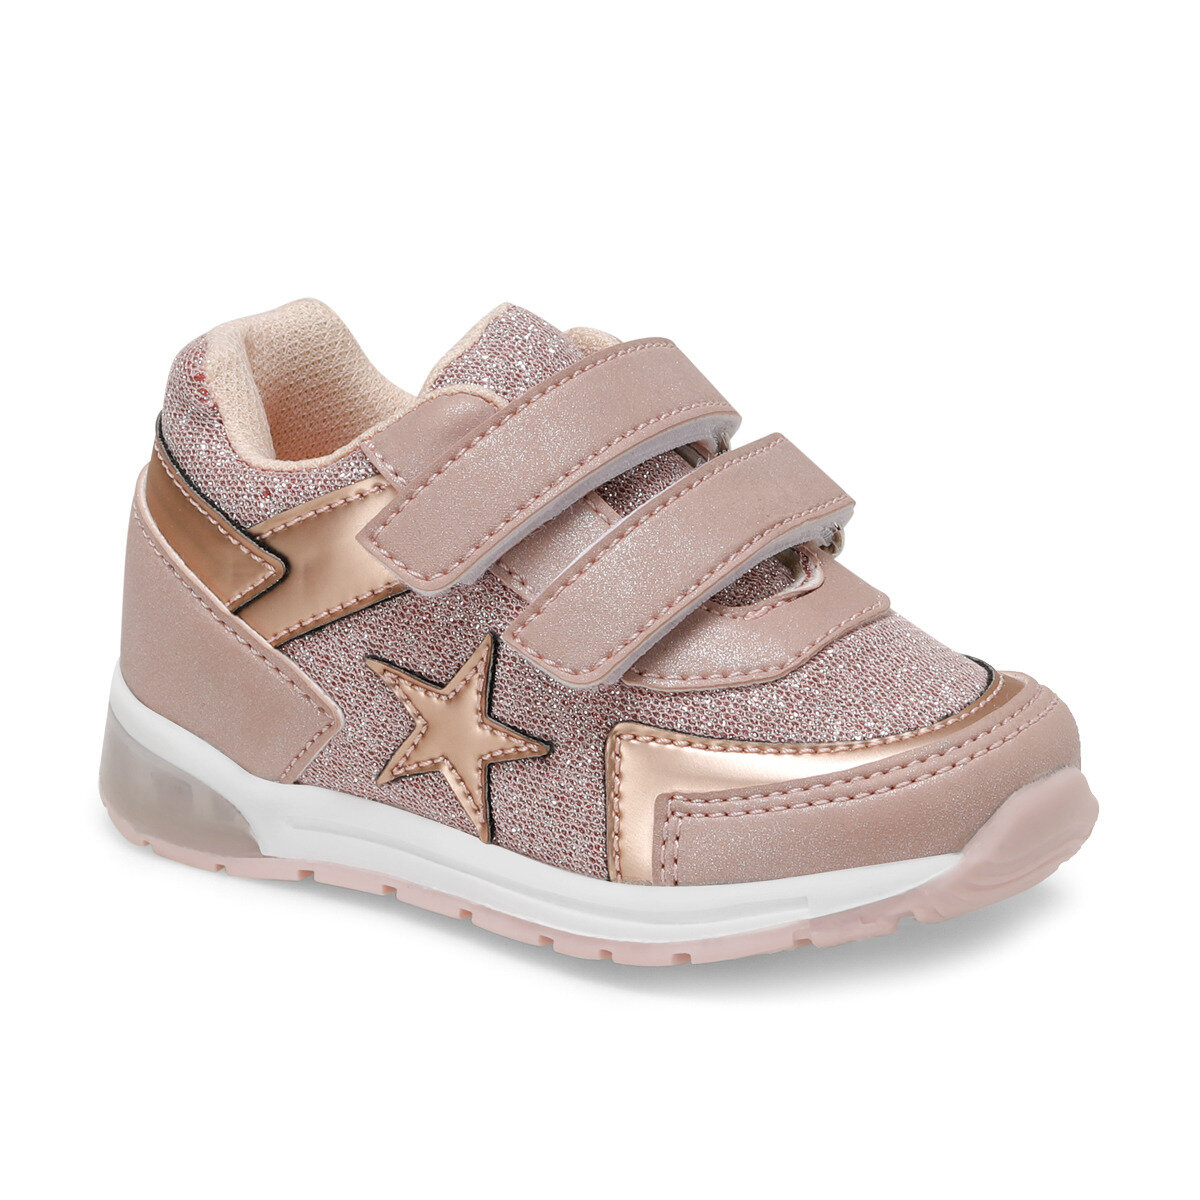 FLO STAR Powder Female Child Sports Shoes Balloon-s